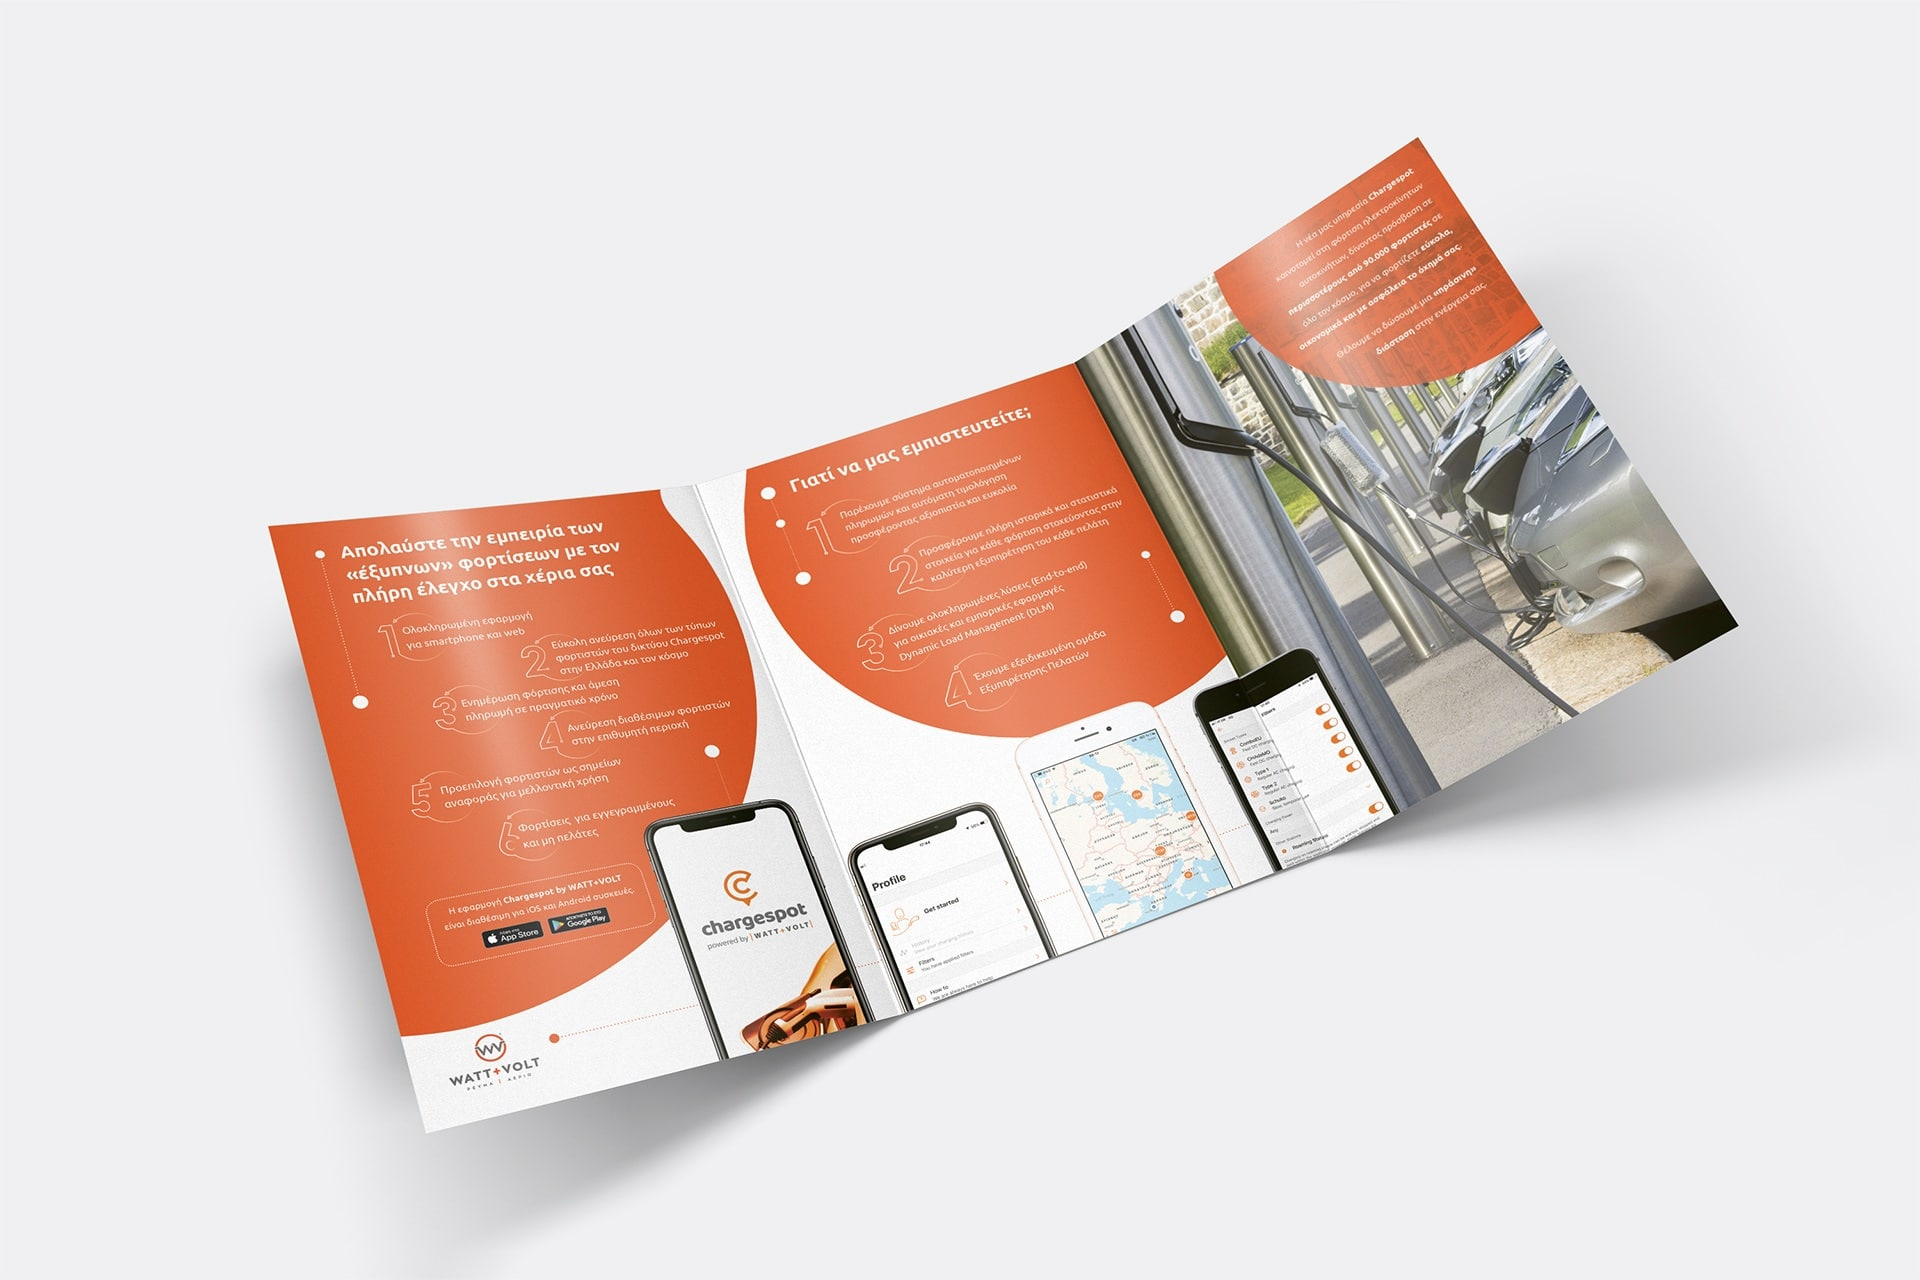 A4 trifold brochure b2b 3 Chargespot